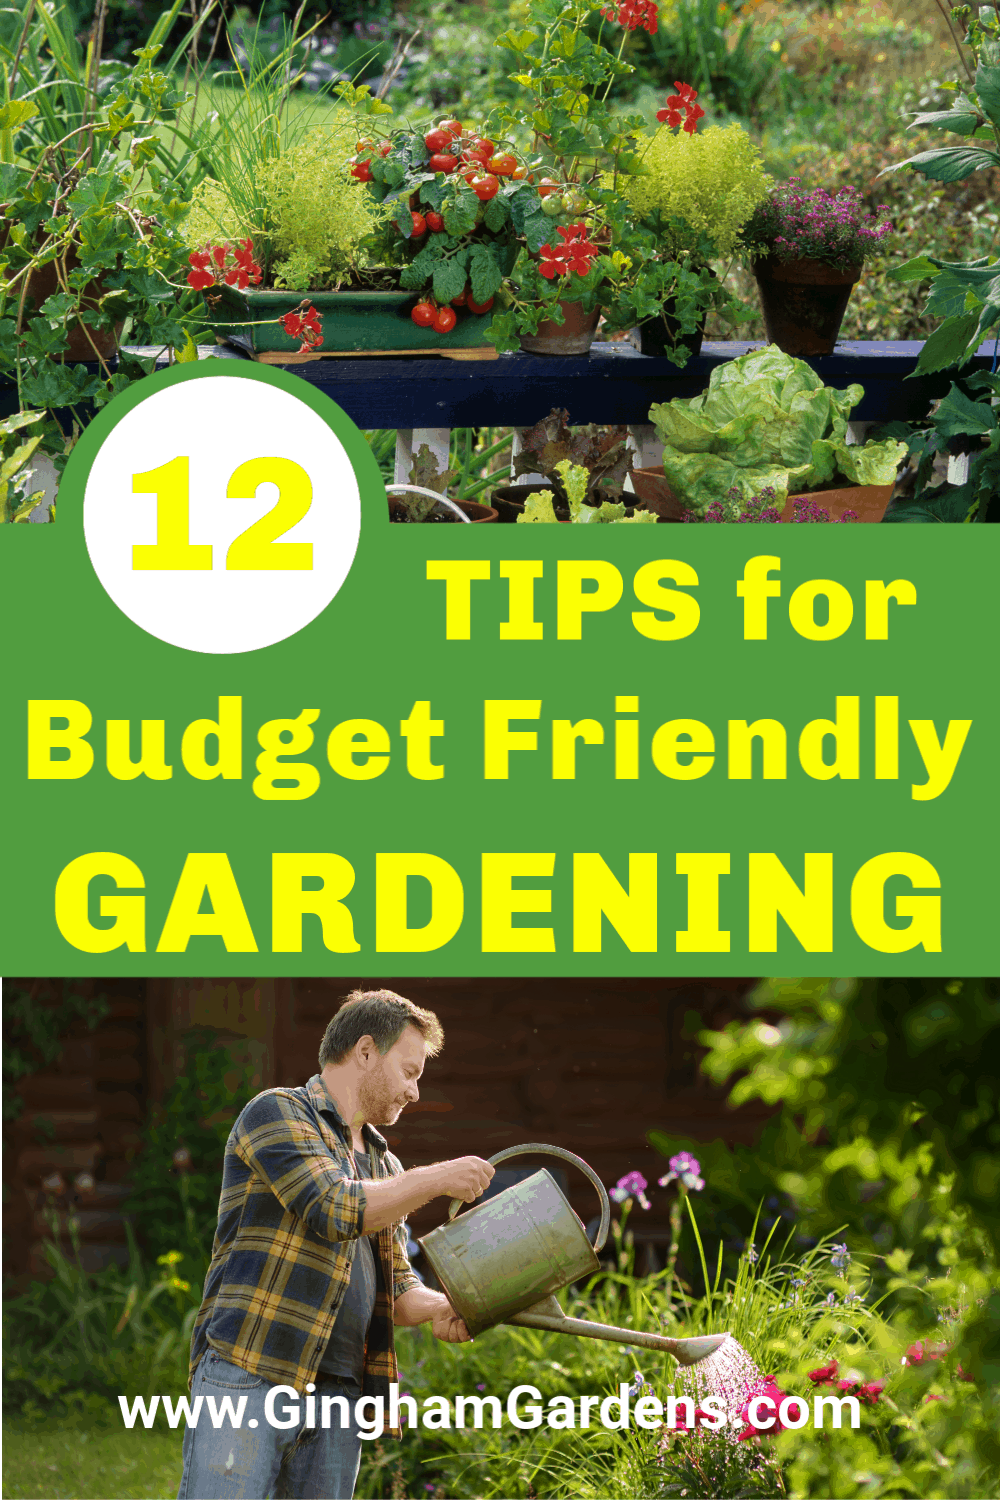 Image of Garden and Gardener with text overlay - 12 Tips for Budget Friendly Gardening